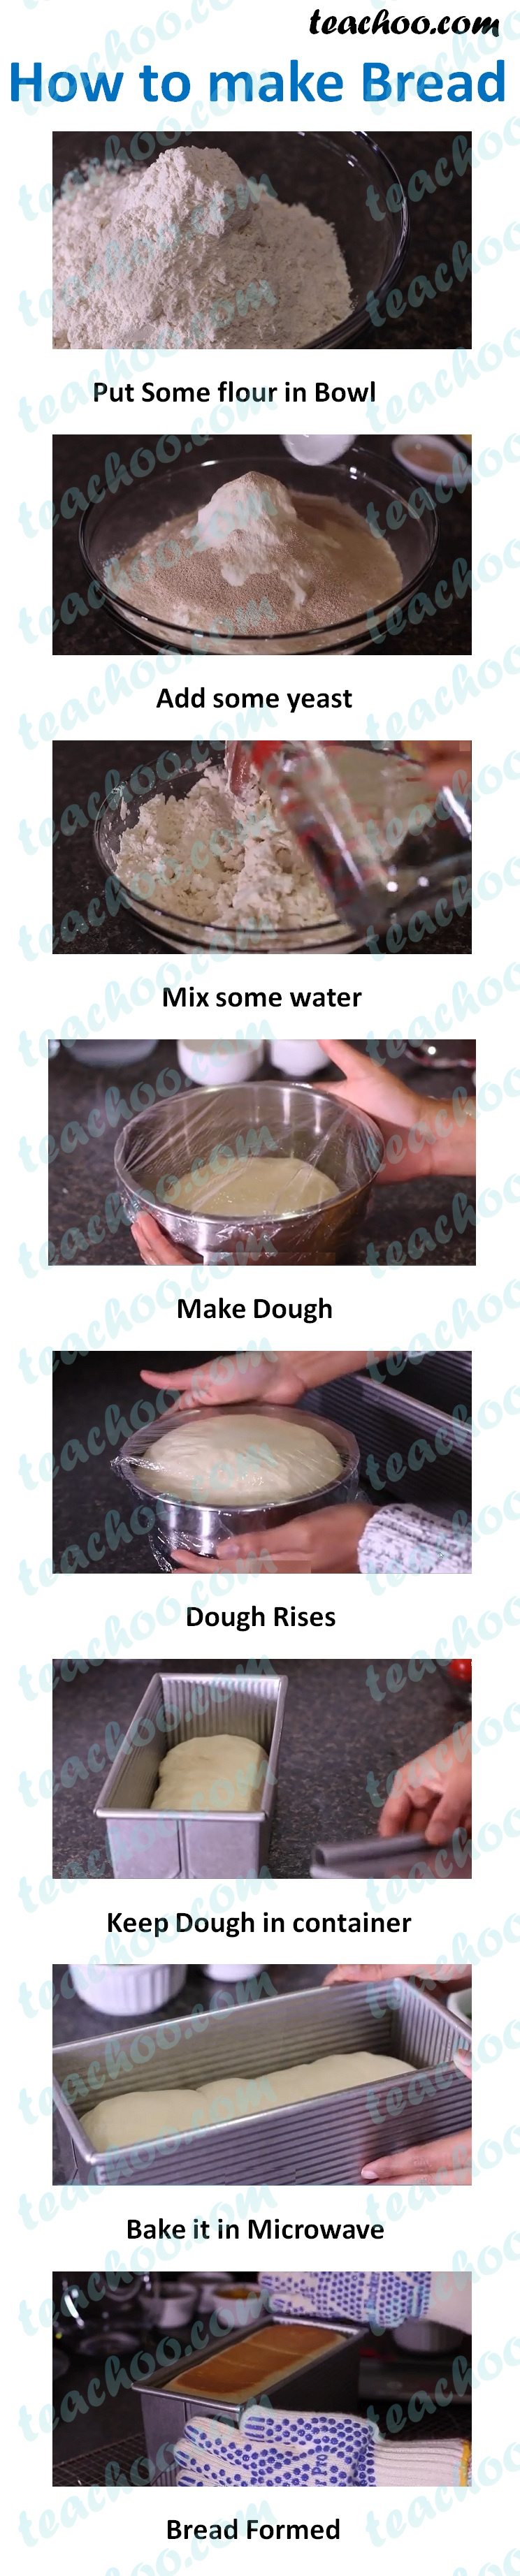 how-to-make-bread---with-steps.jpg